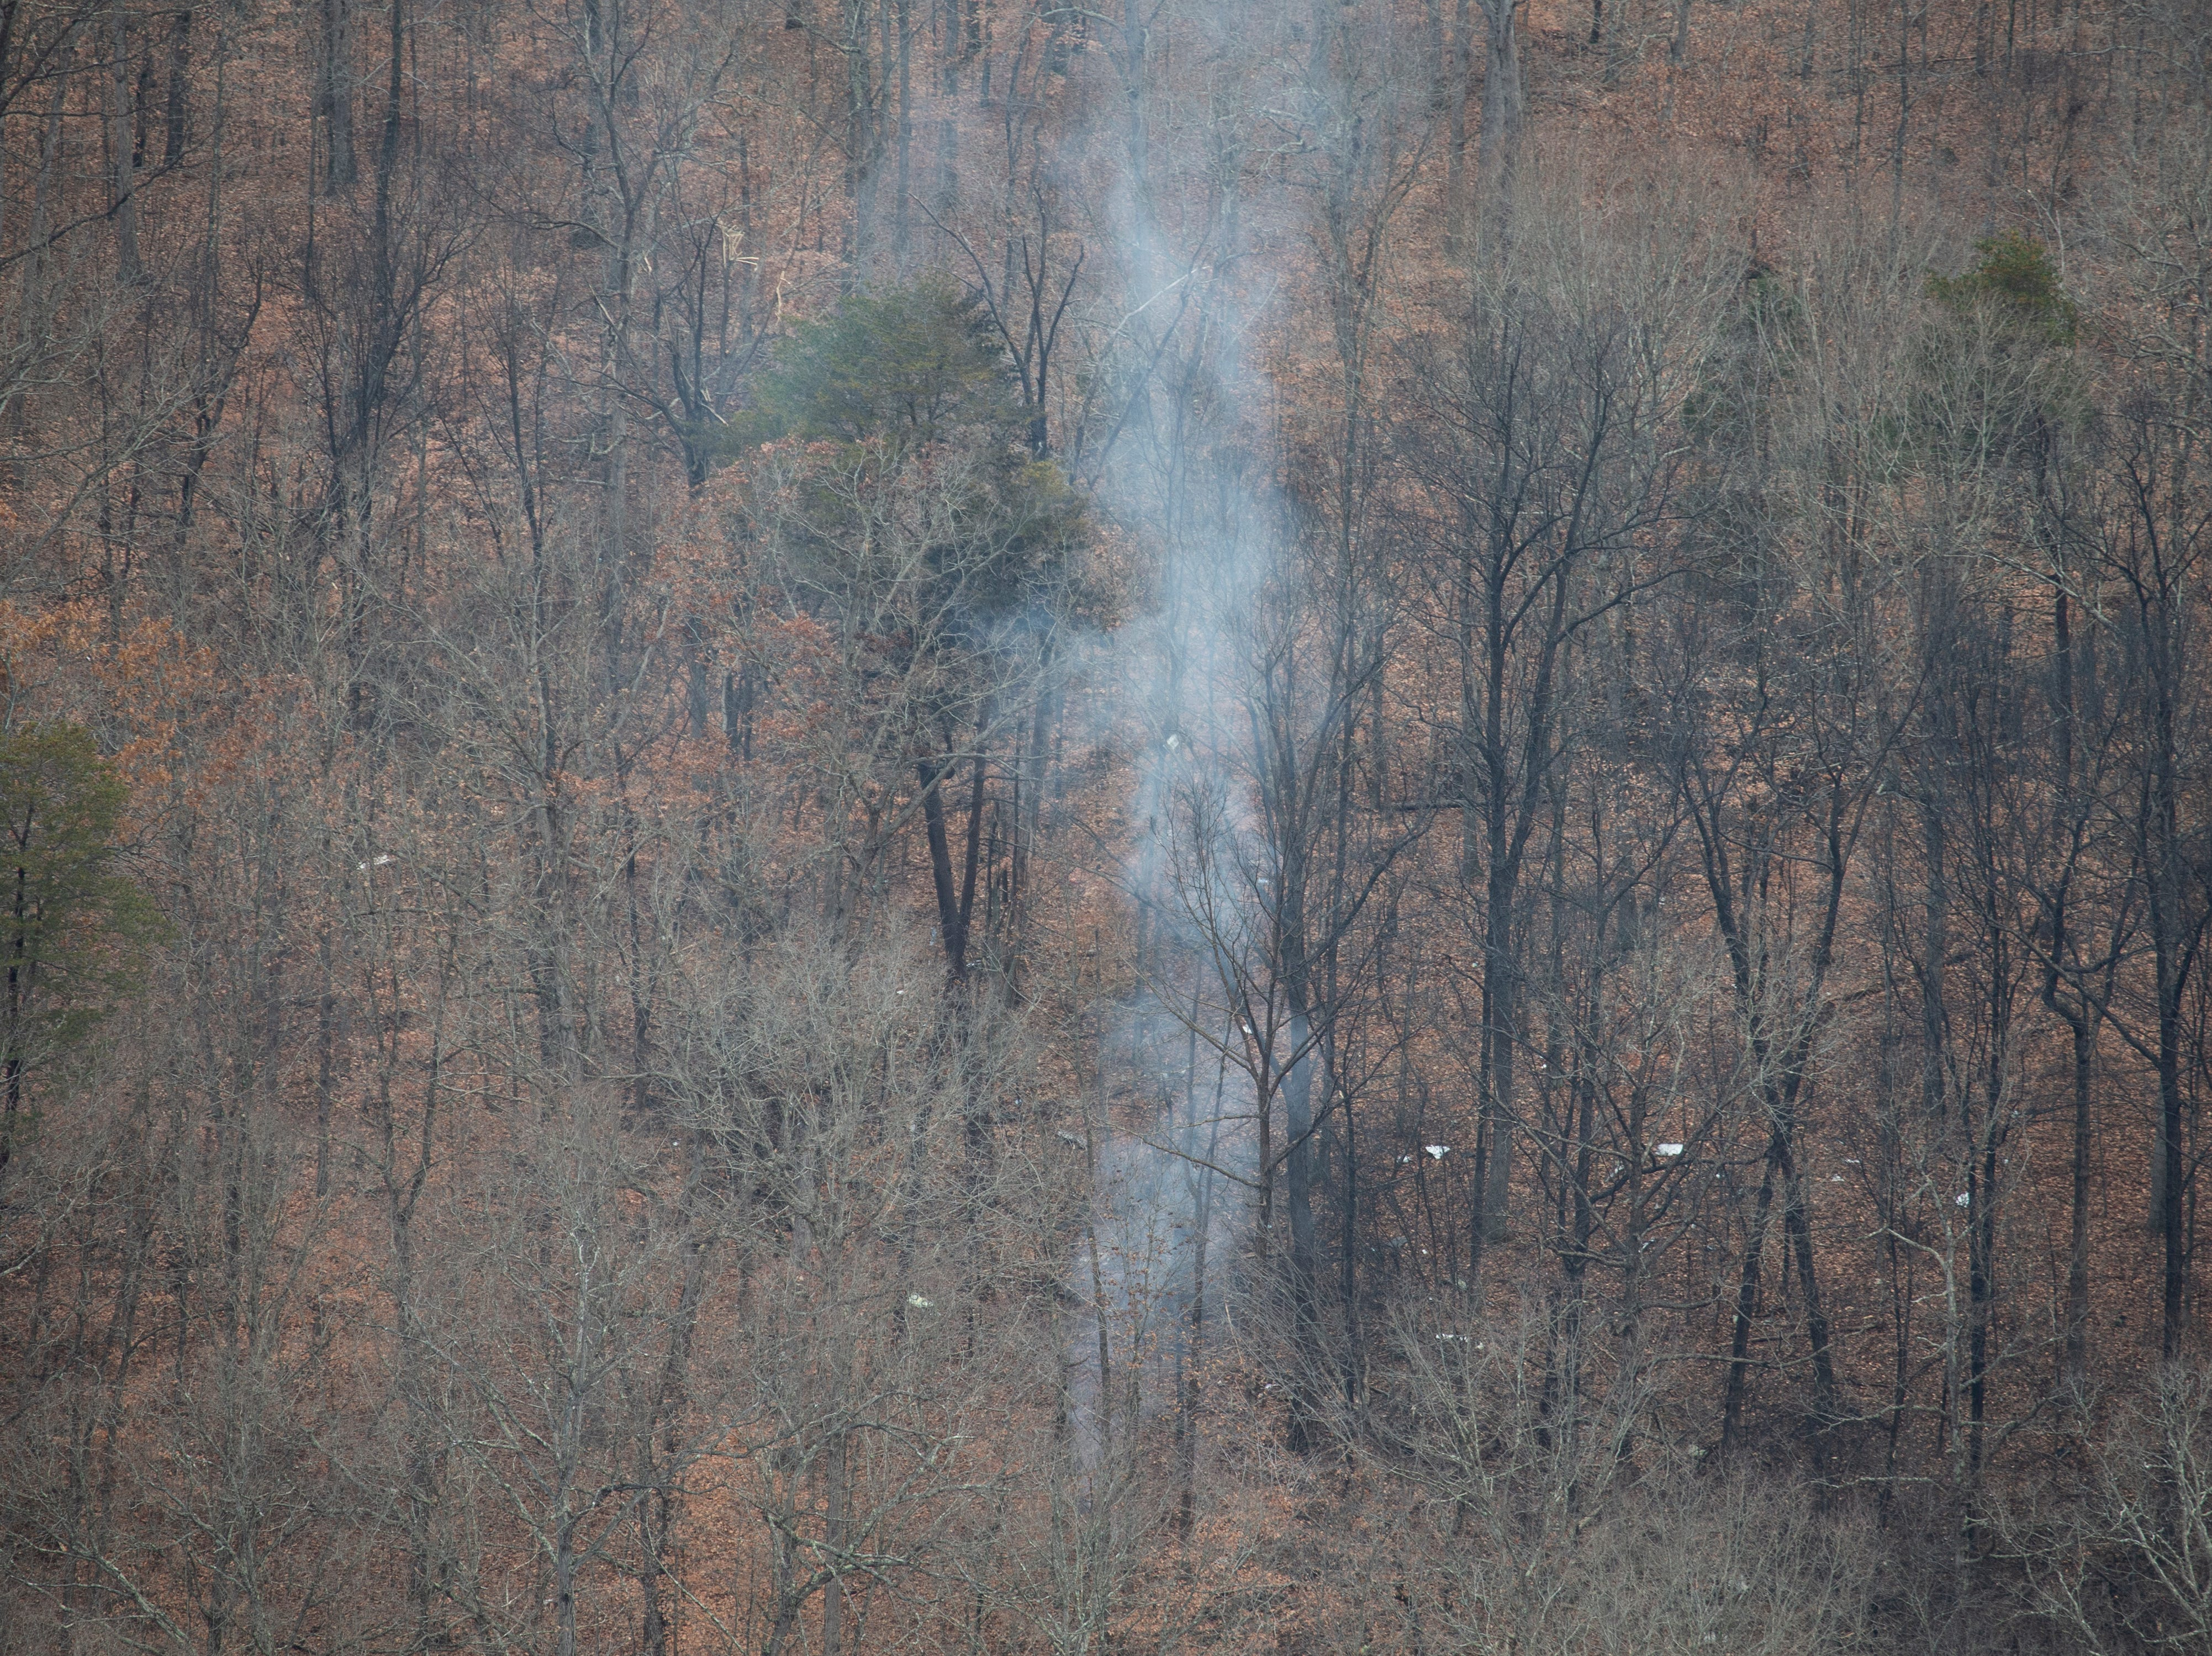 A plume of smoke and debris on the ground are the only indication of a small plane that crashed in a wooded area near Memphis, Indiana following a takeoff from the Clark County Airport. Nov. 30, 2018.